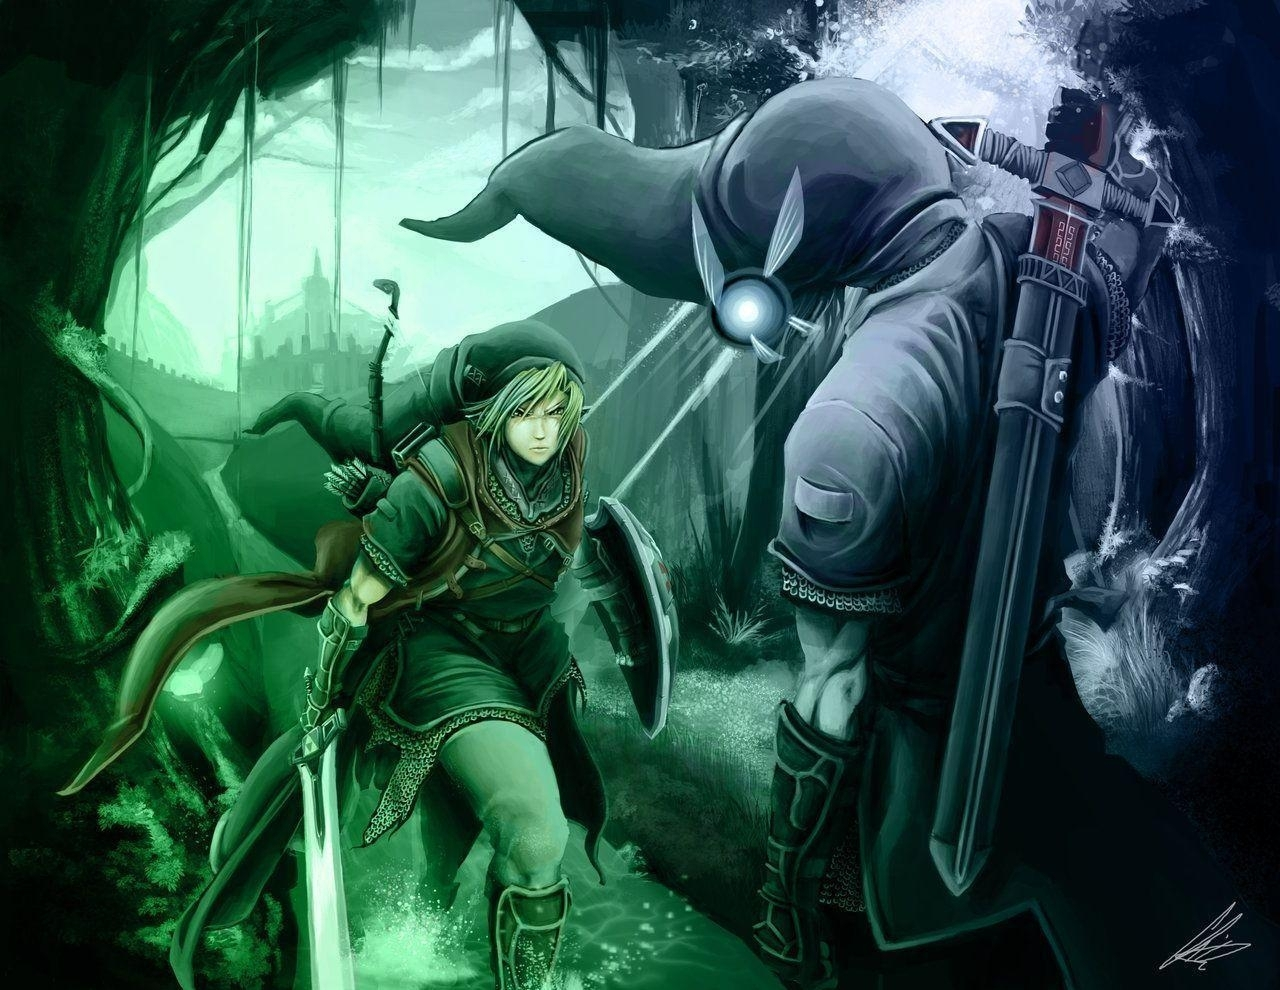 Title Dark Link Wallpapers Wallpaper Cave Dimension 1280 X 990 File Type JPG JPEG